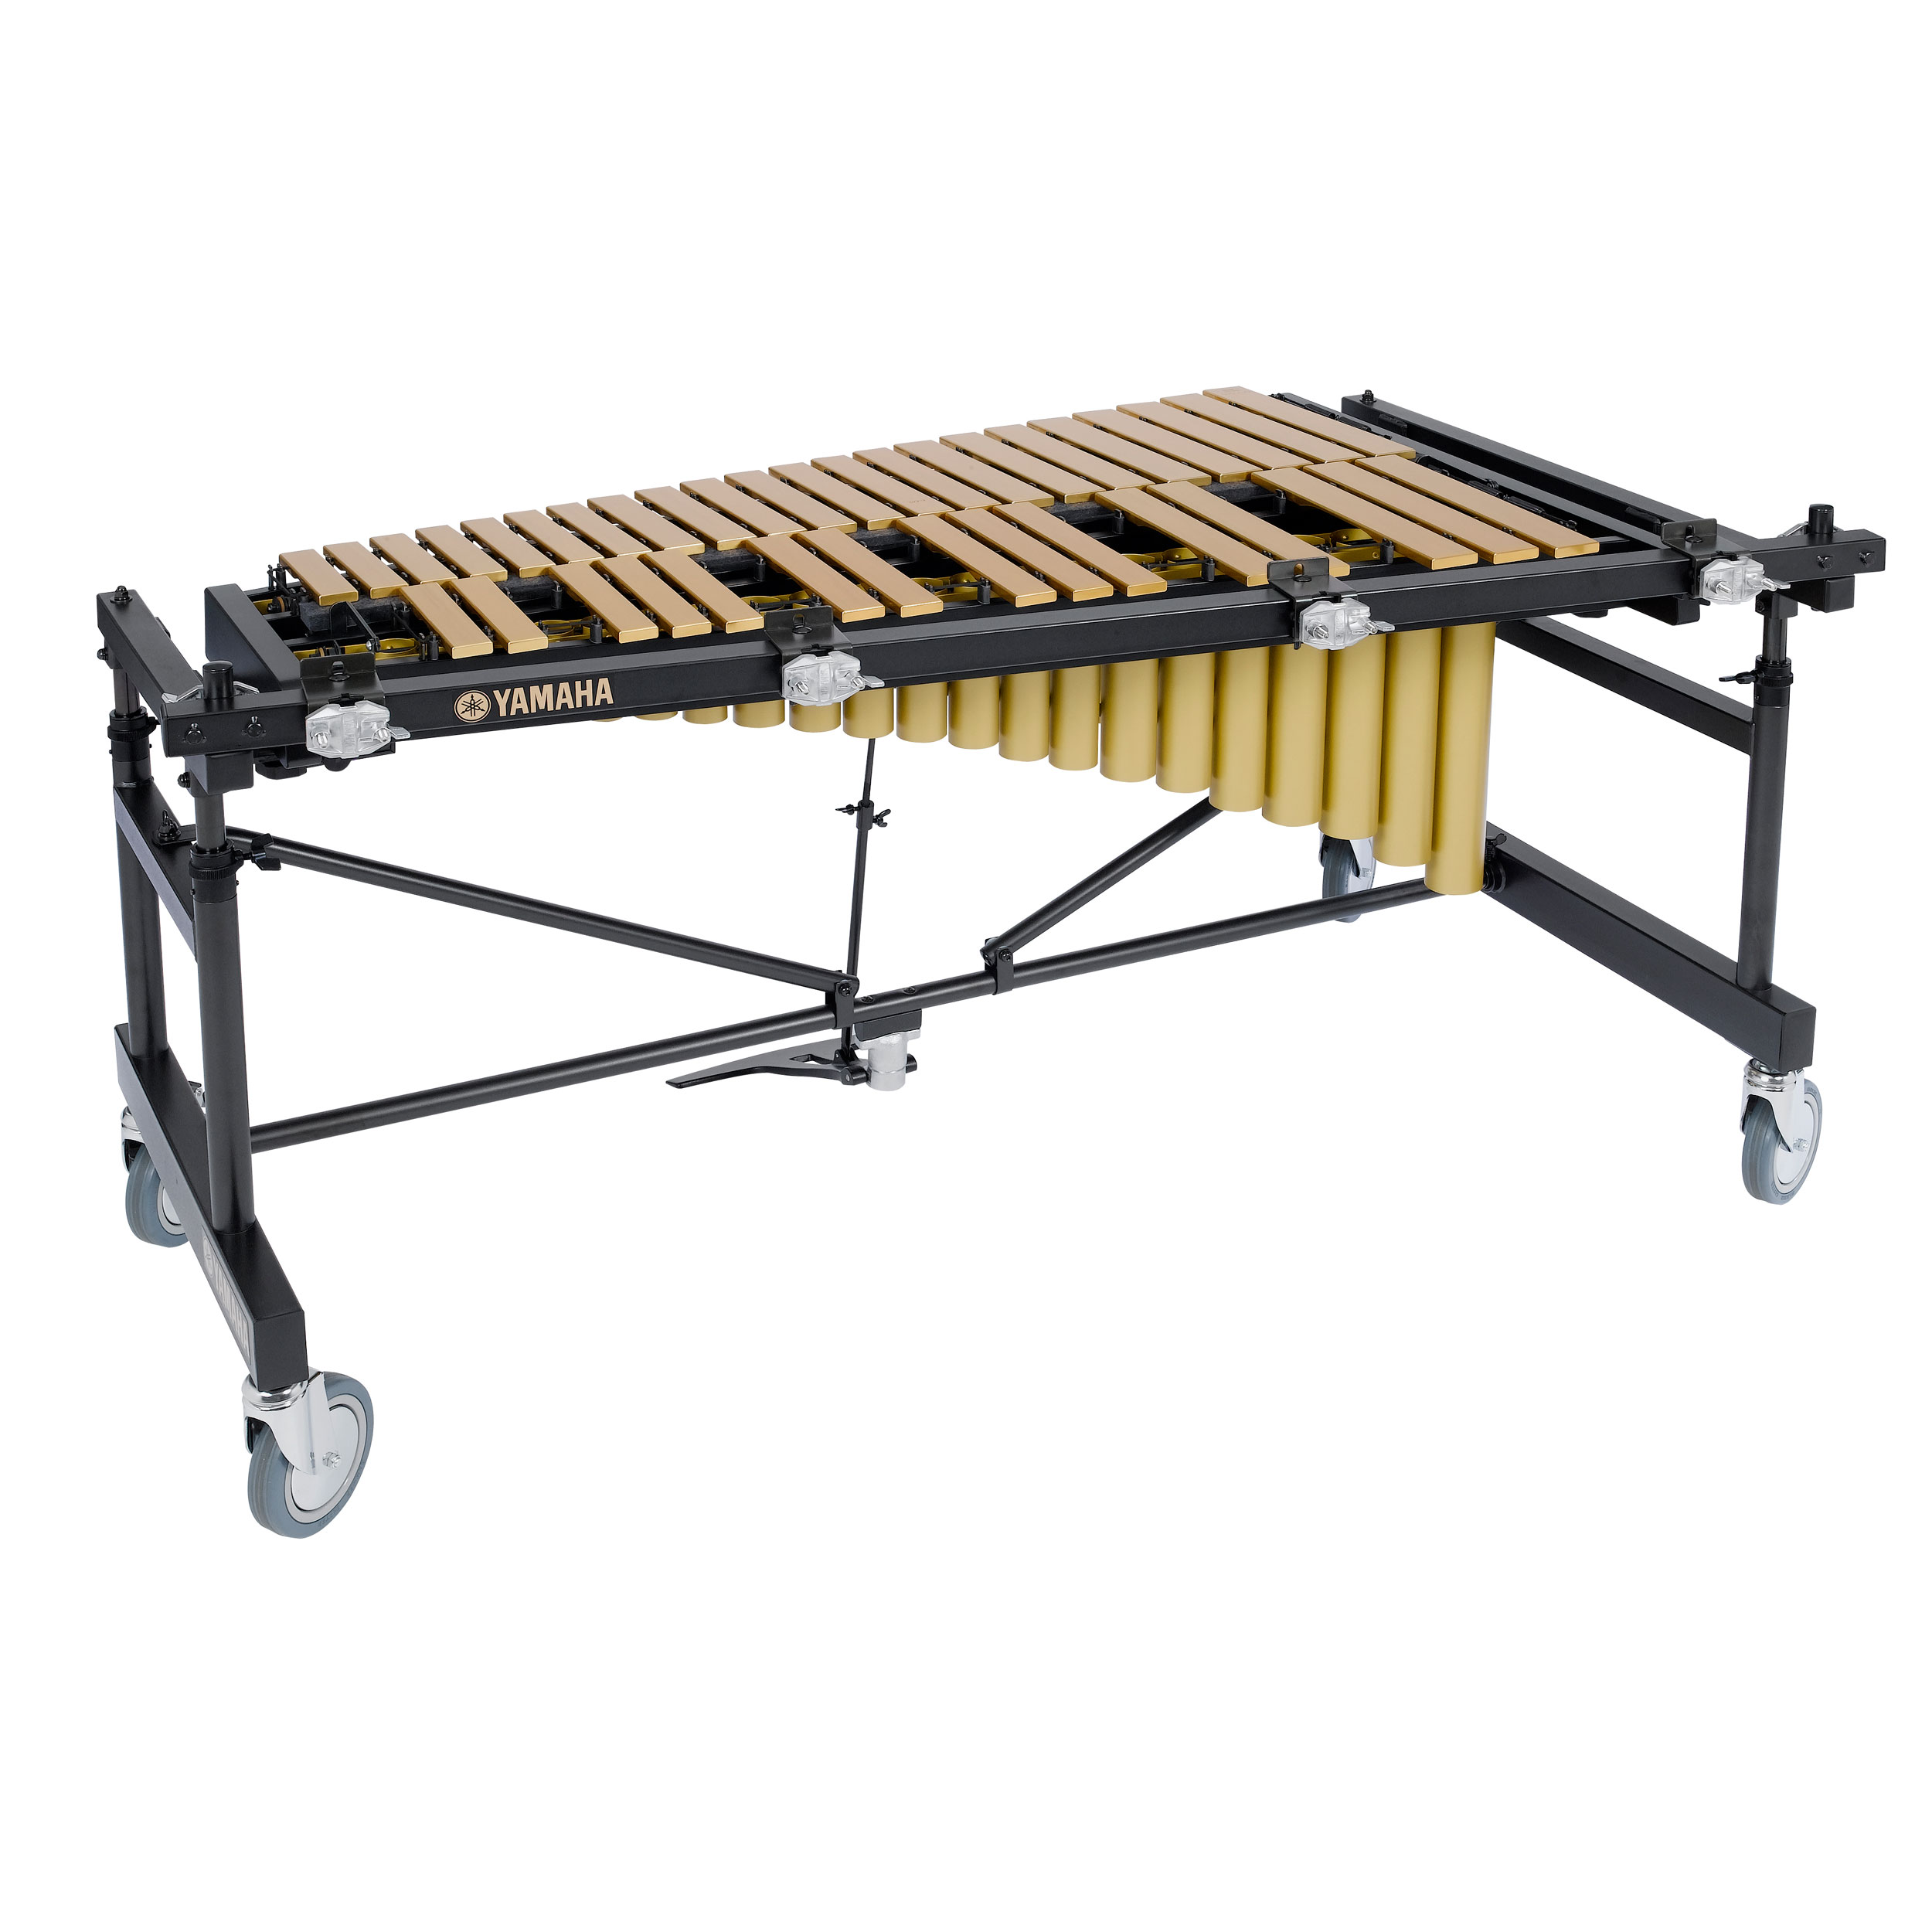 Yamaha 3 Octave Gold Studio Vibraphone, Motor, Multi-Frame with Cover